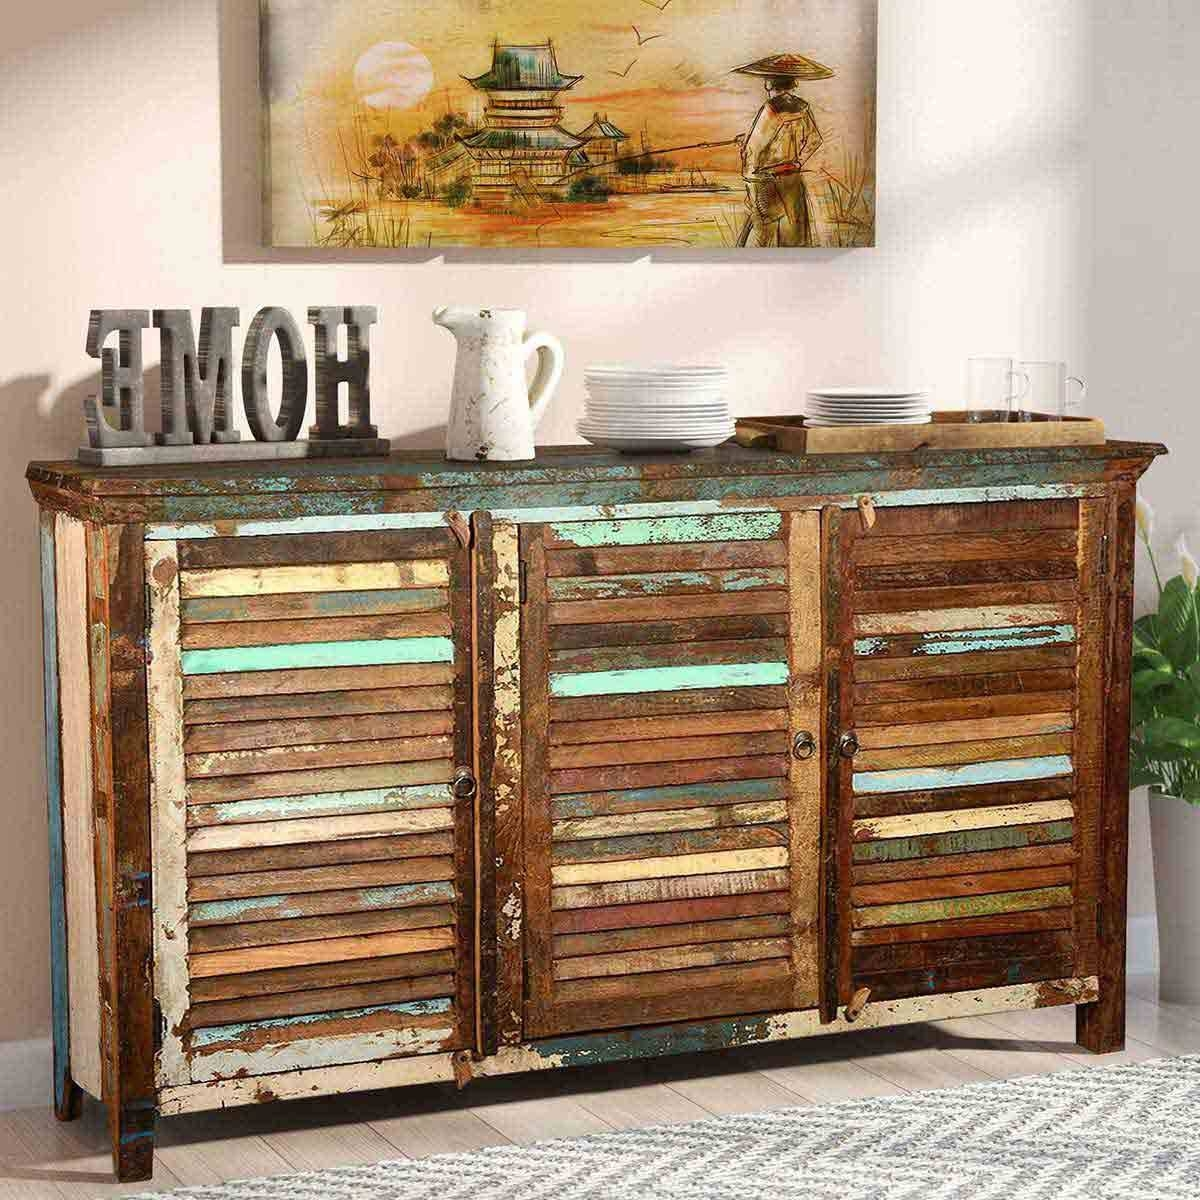 Rustic Reclaimed Wood Shutter Door Buffet Cabinet with regard to Reclaimed Wood Sideboards (Image 12 of 15)